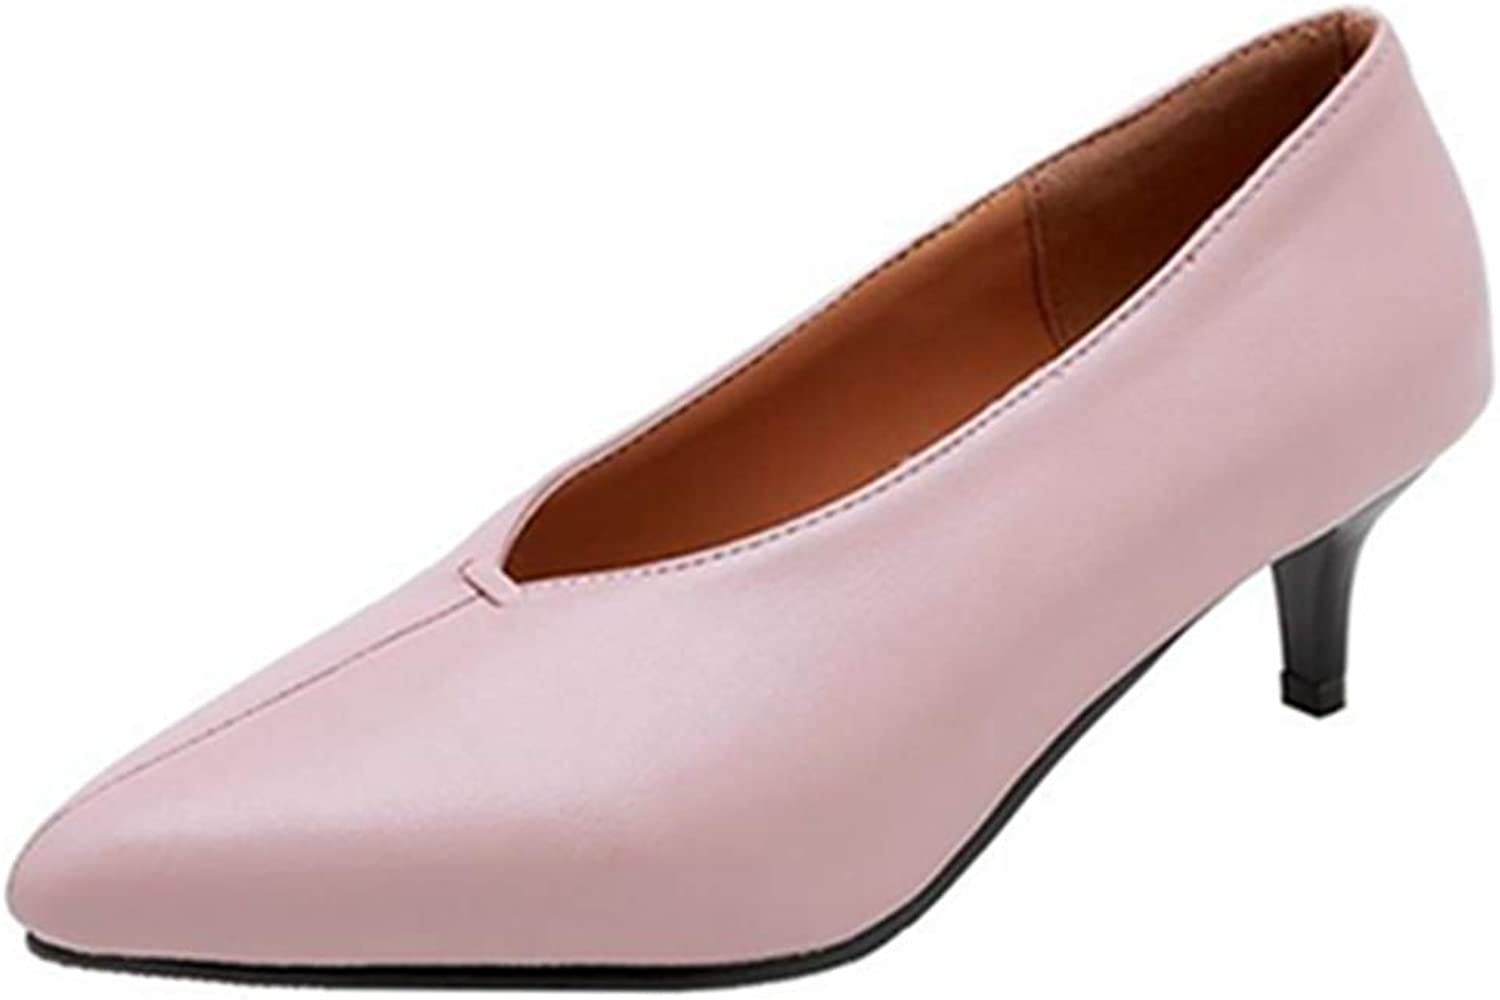 CuteFlats Women Casual Pumps with Kitten Heel